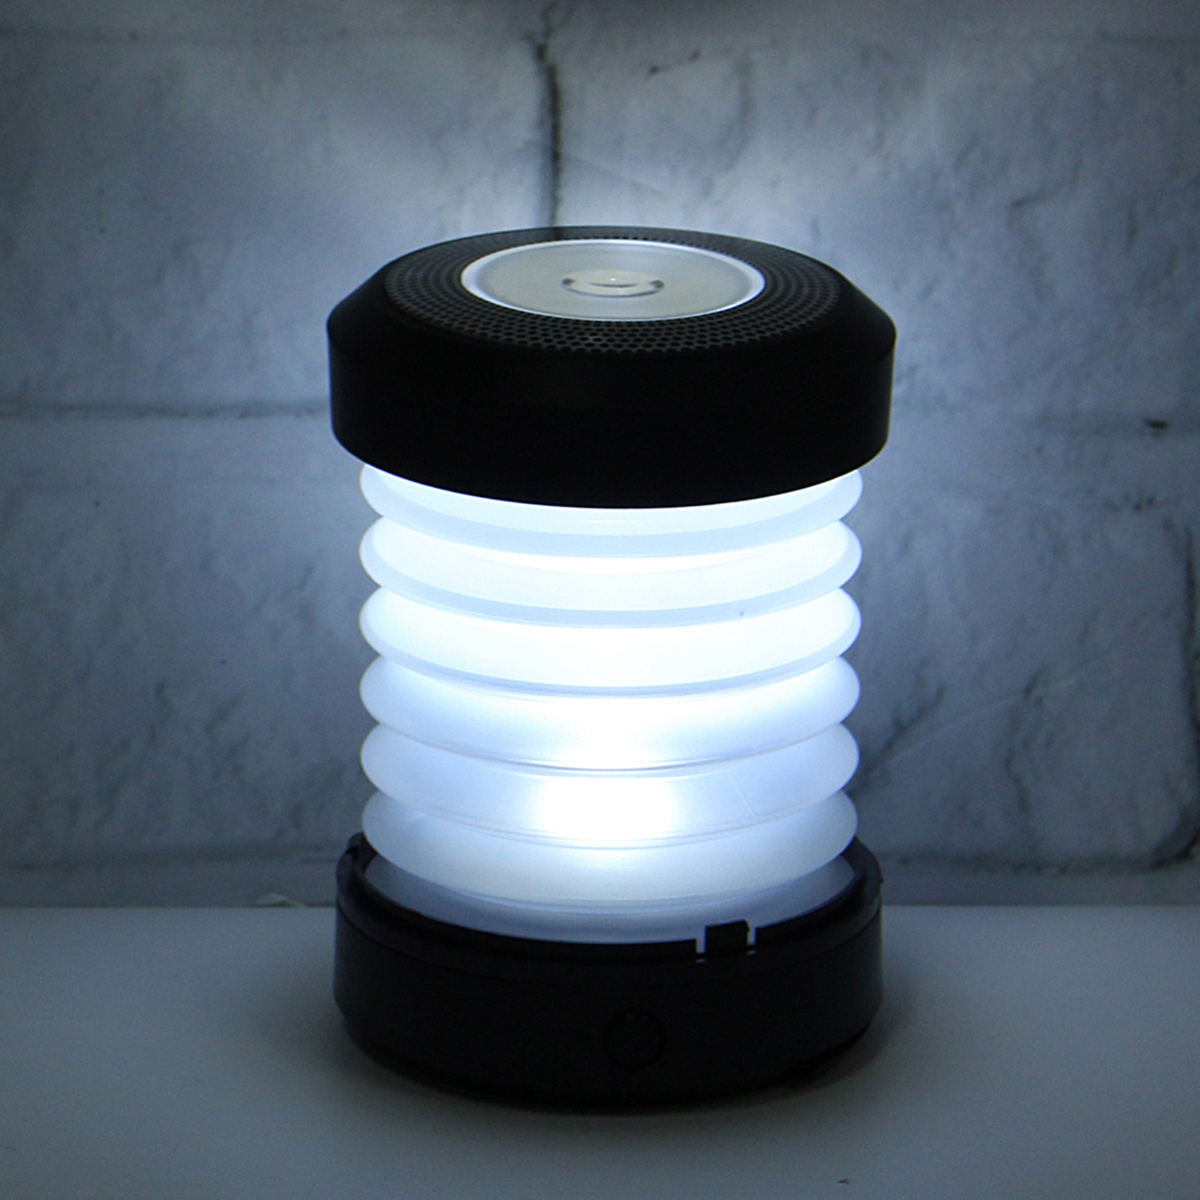 Collapsible Camping LED Lantern Hiking Emergency Night Light Lamp Battery Powered